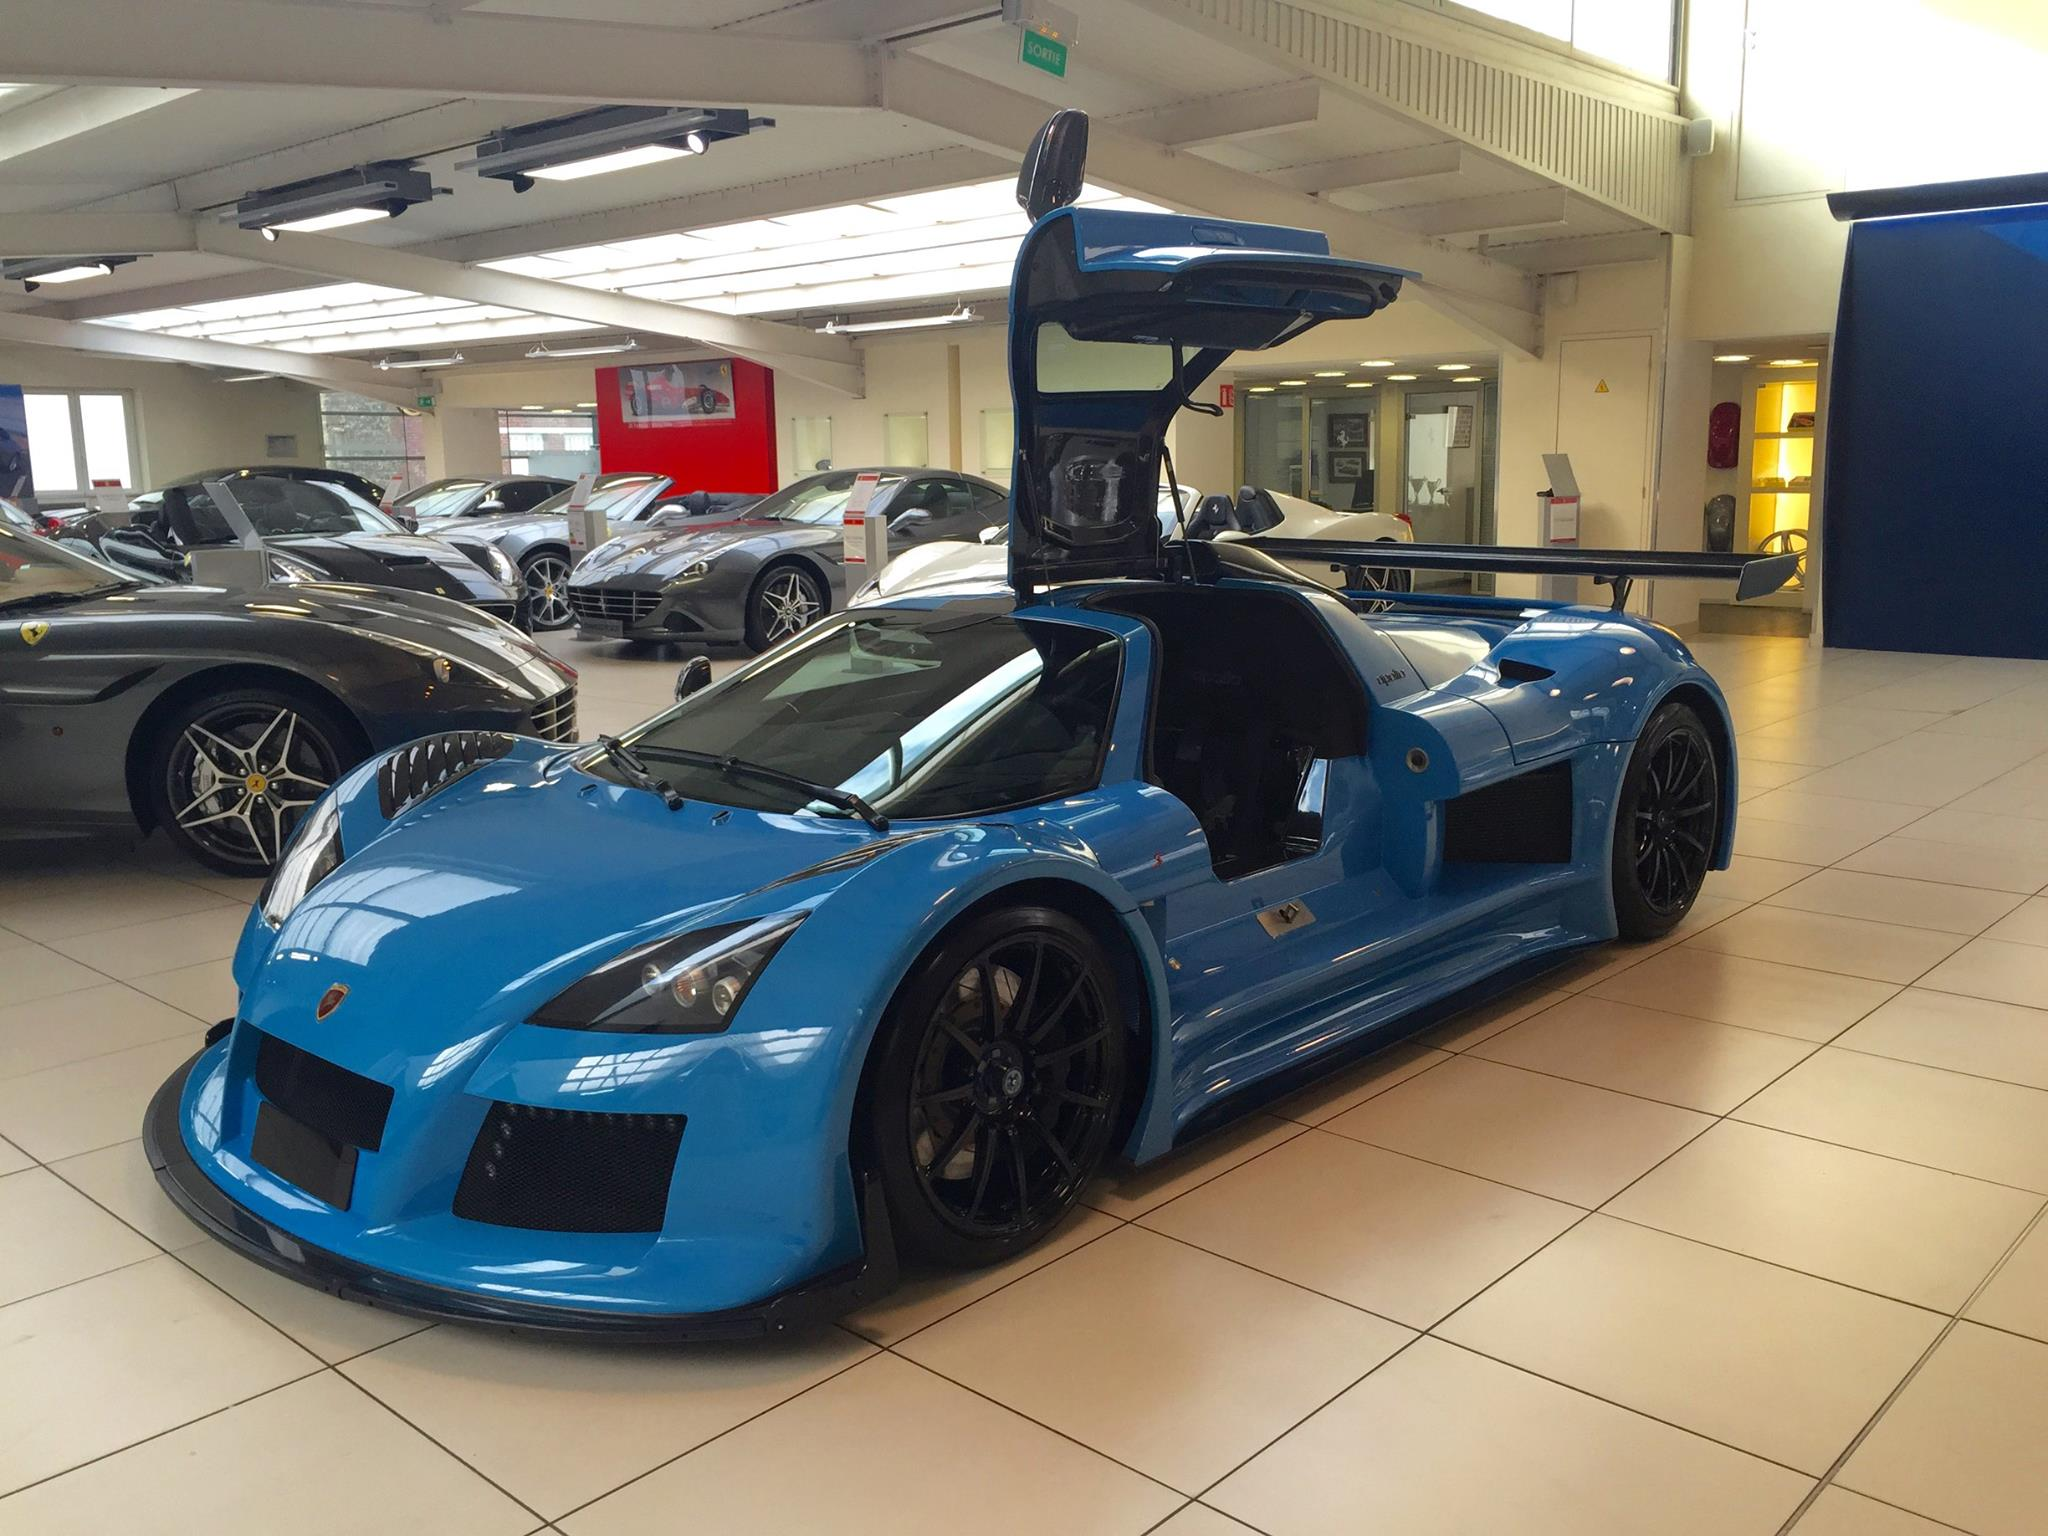 blue gumpert apollo s for sale in france gtspirit. Black Bedroom Furniture Sets. Home Design Ideas